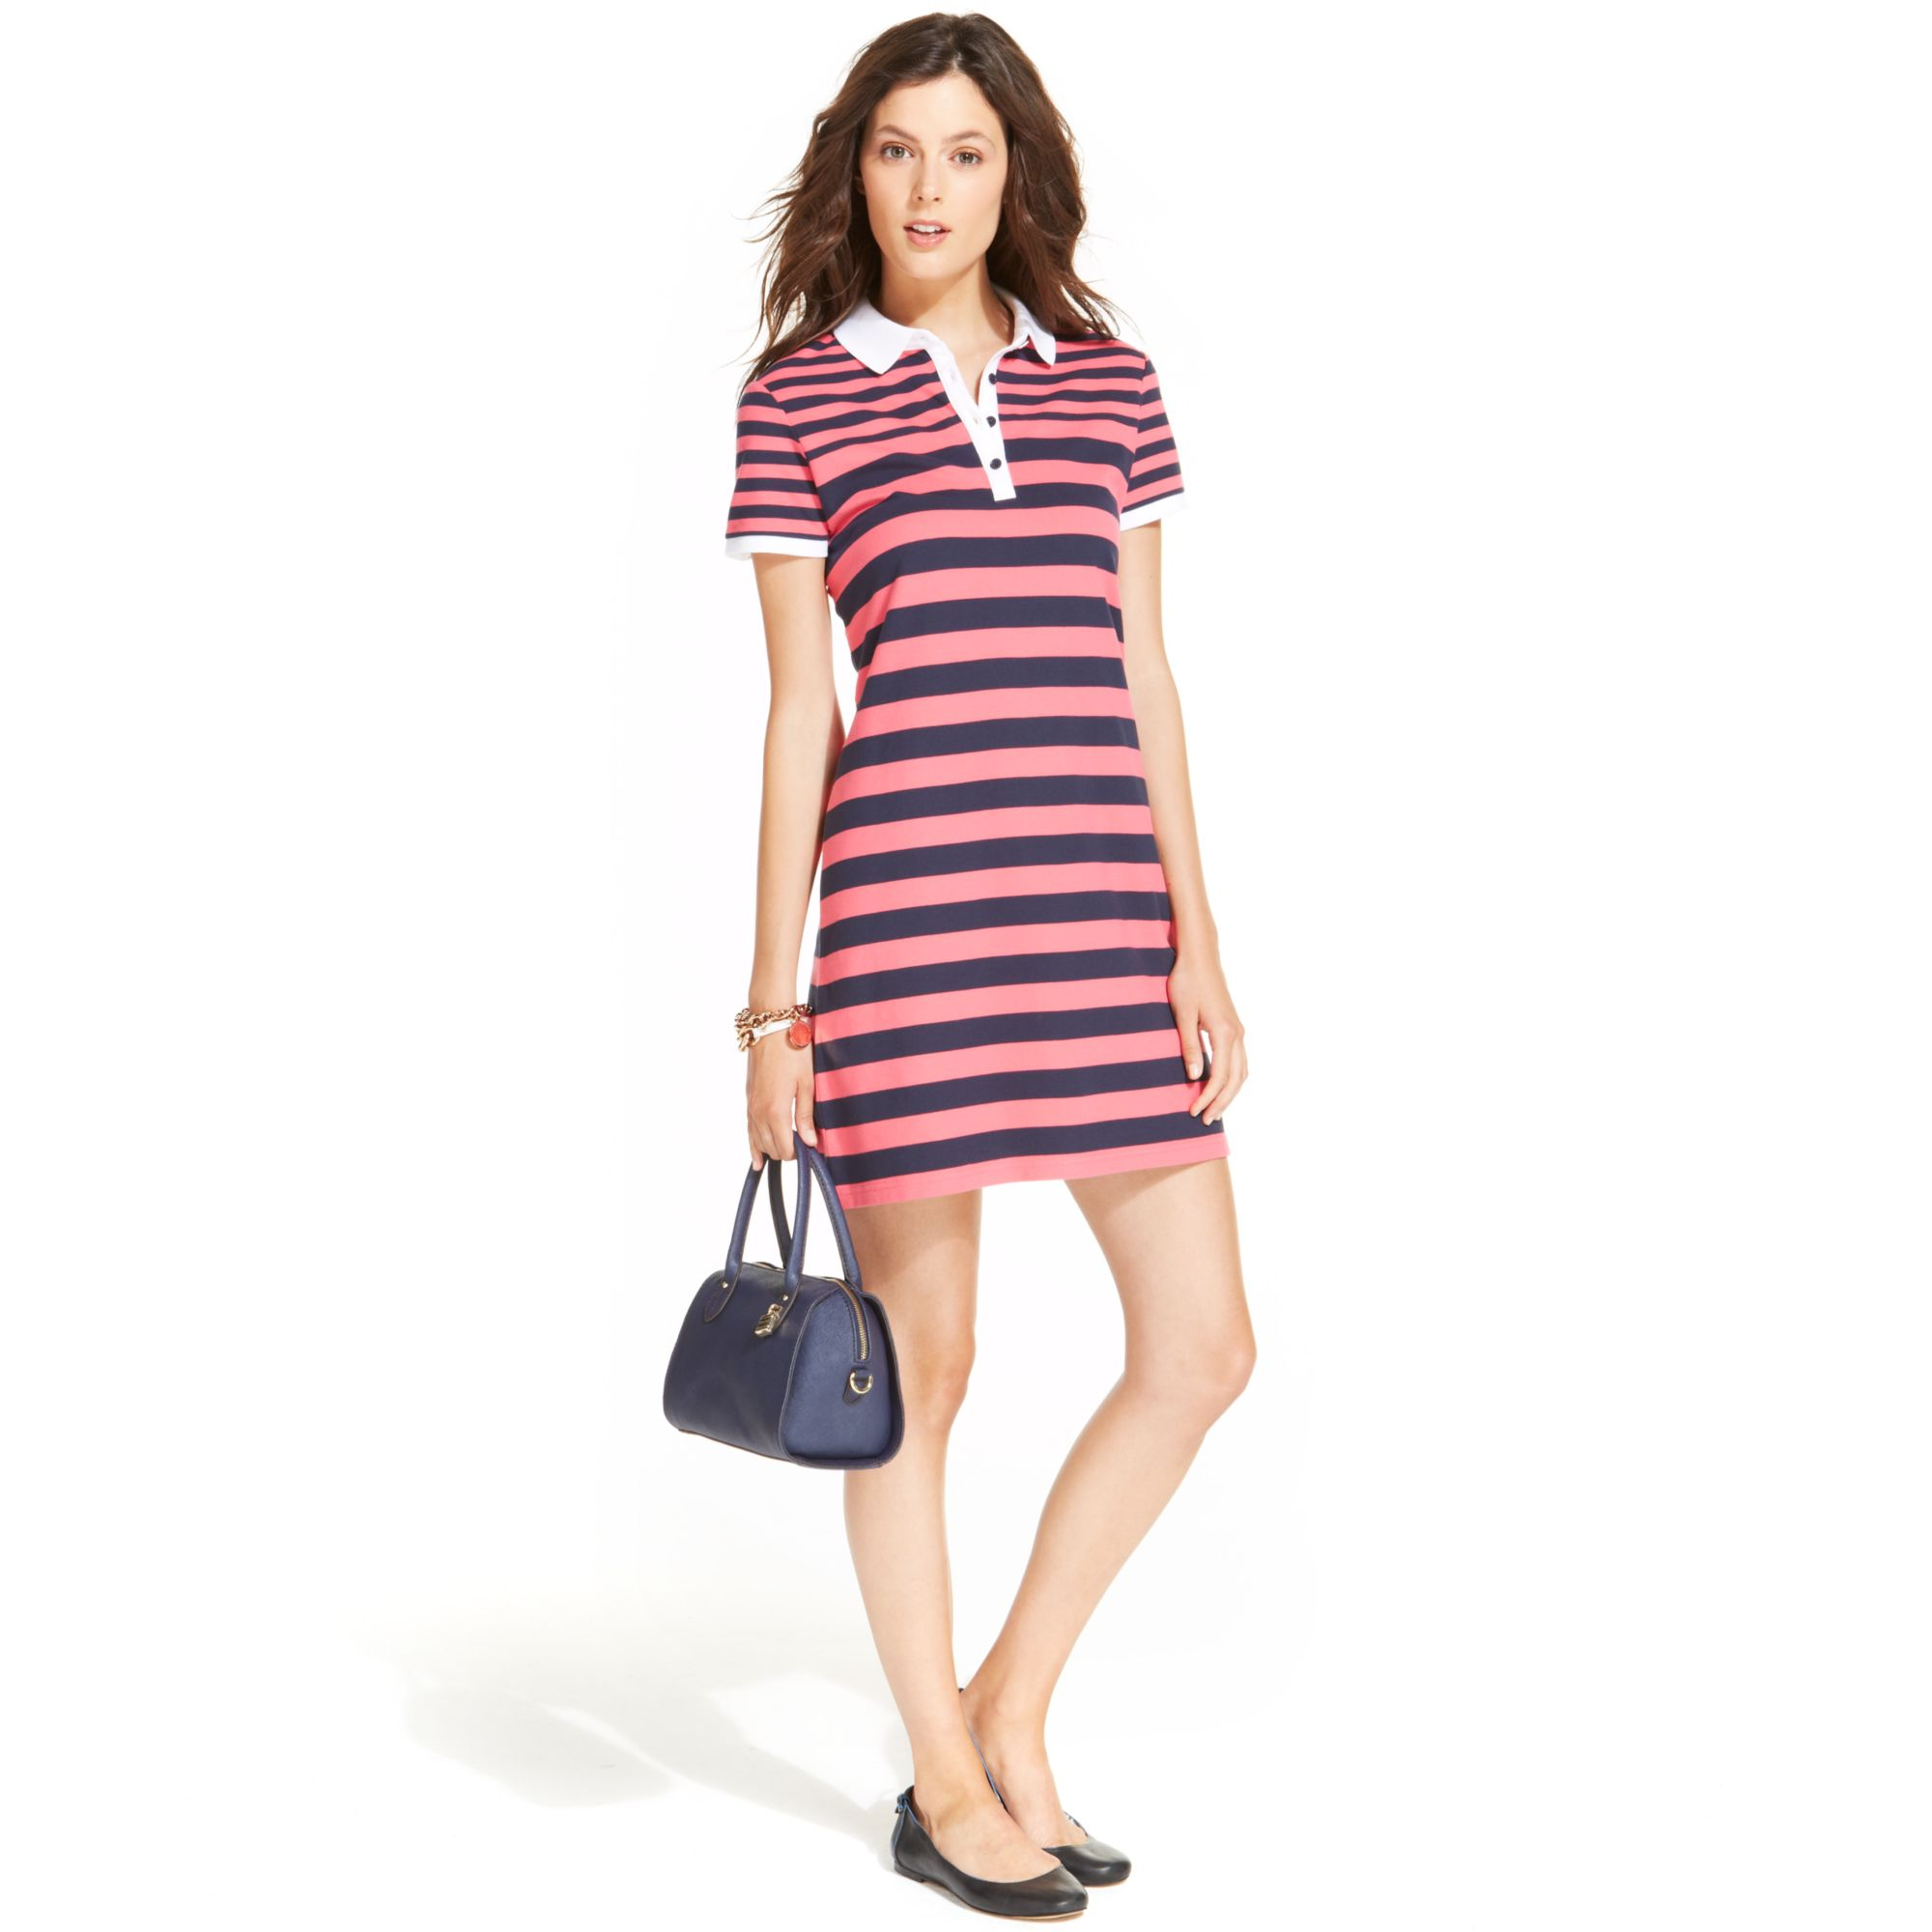 723808d7 Tommy Hilfiger Shortsleeve Striped Polo Dress in Pink - Lyst